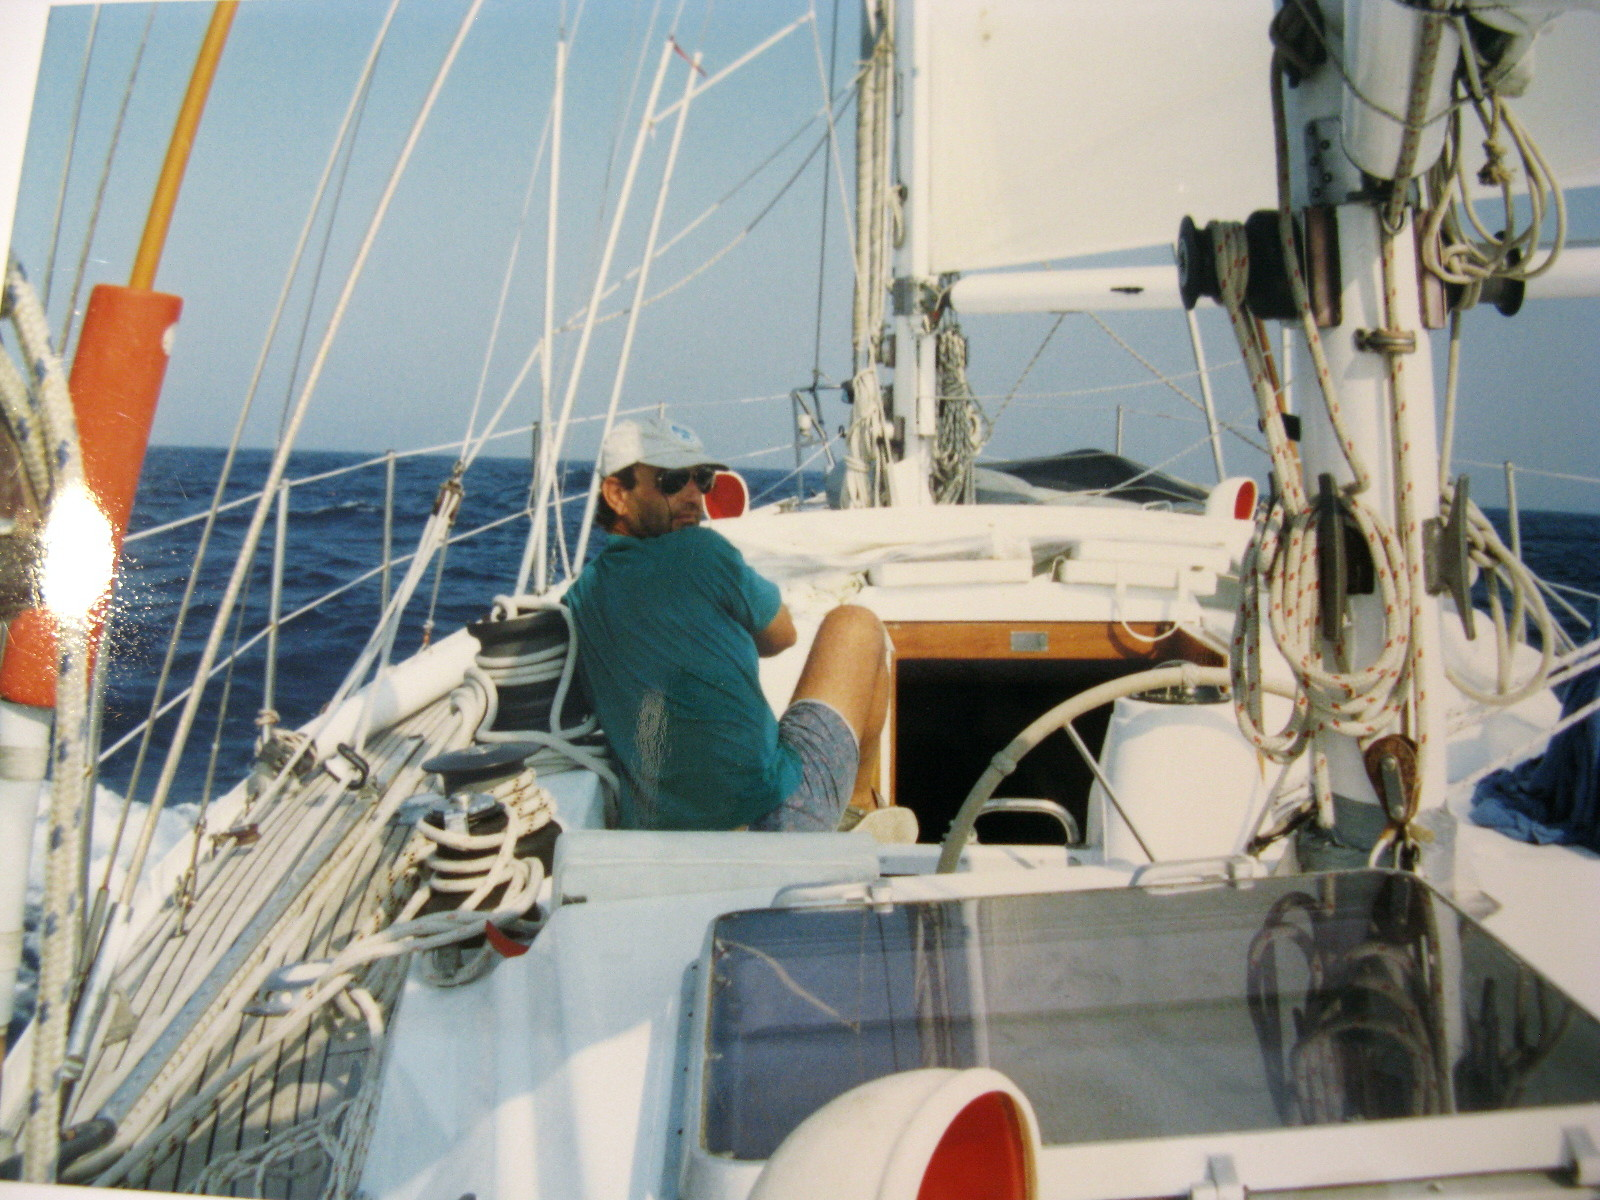 """""""S/Y Sunny"""" offered to us many sunny days, sailing both on the Aegian and Ionian Seas. Co-owner Spilio looks back as the obedient autopilot """"Sklavos"""" (the slave) maintains us on course."""